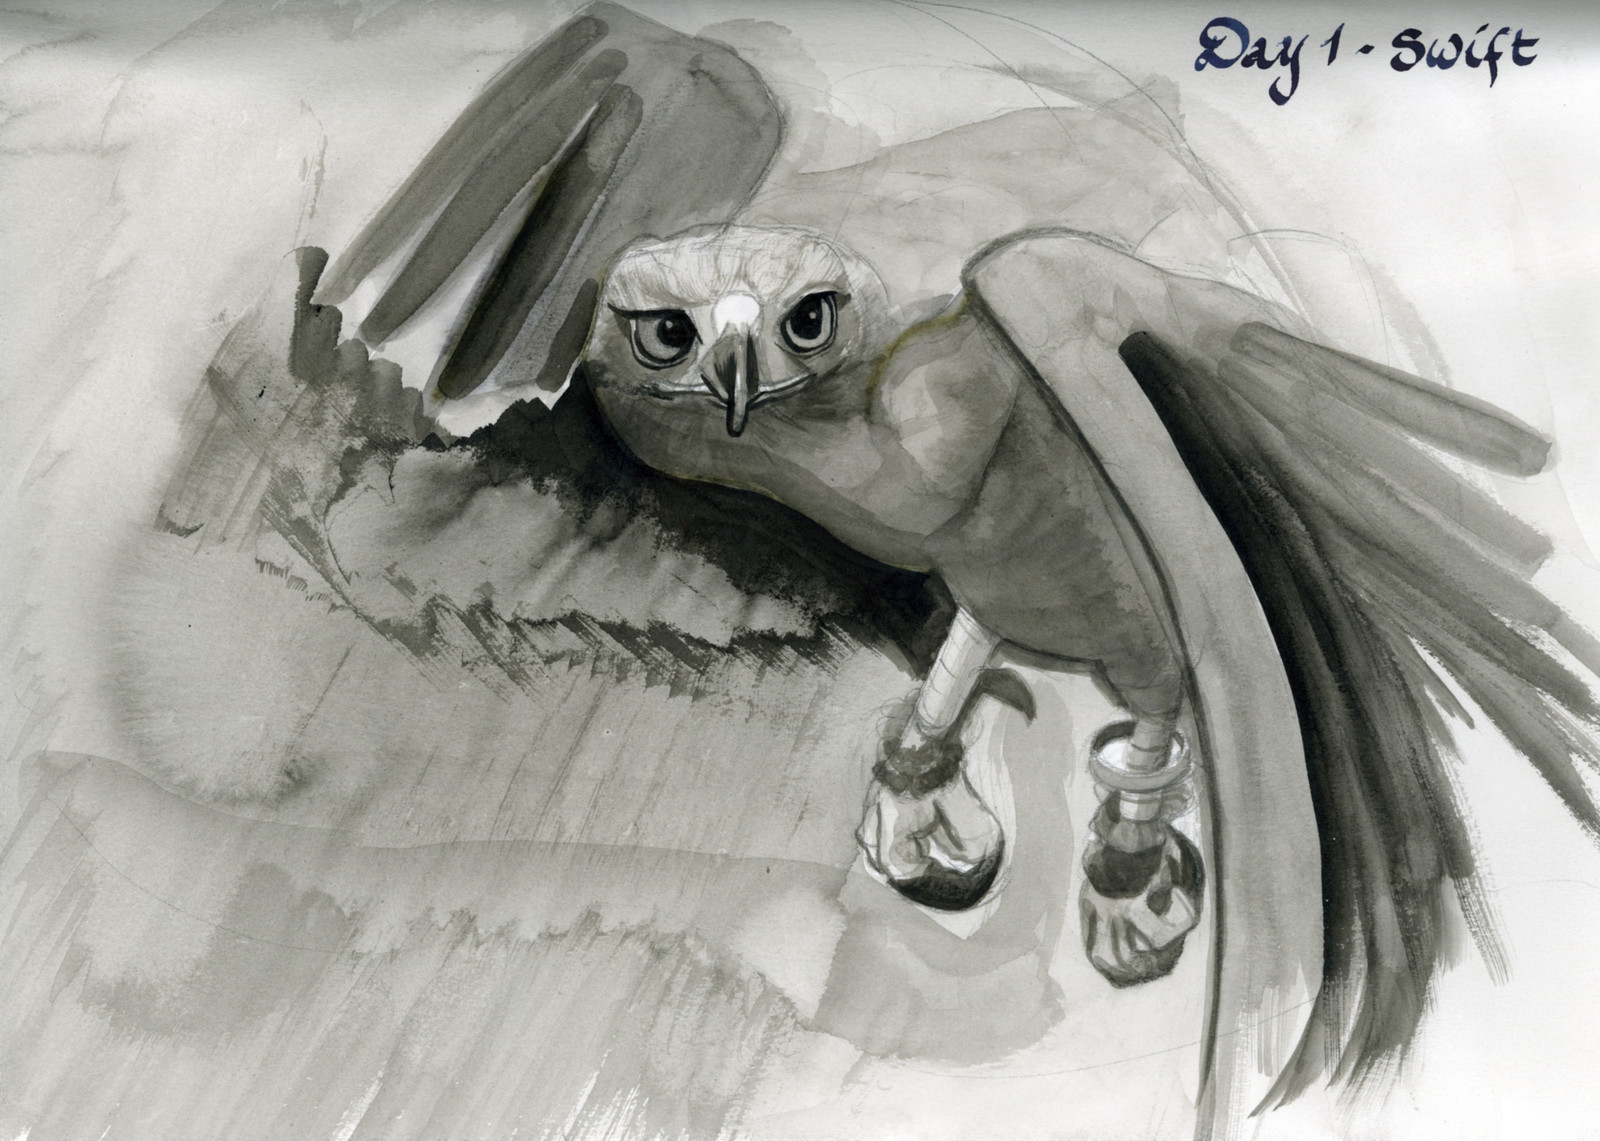 Day 1 - Started my Sunday morning with this inkdrawing of a swift eagle. First participation for #Inktober2017 #inktober #inktober2017